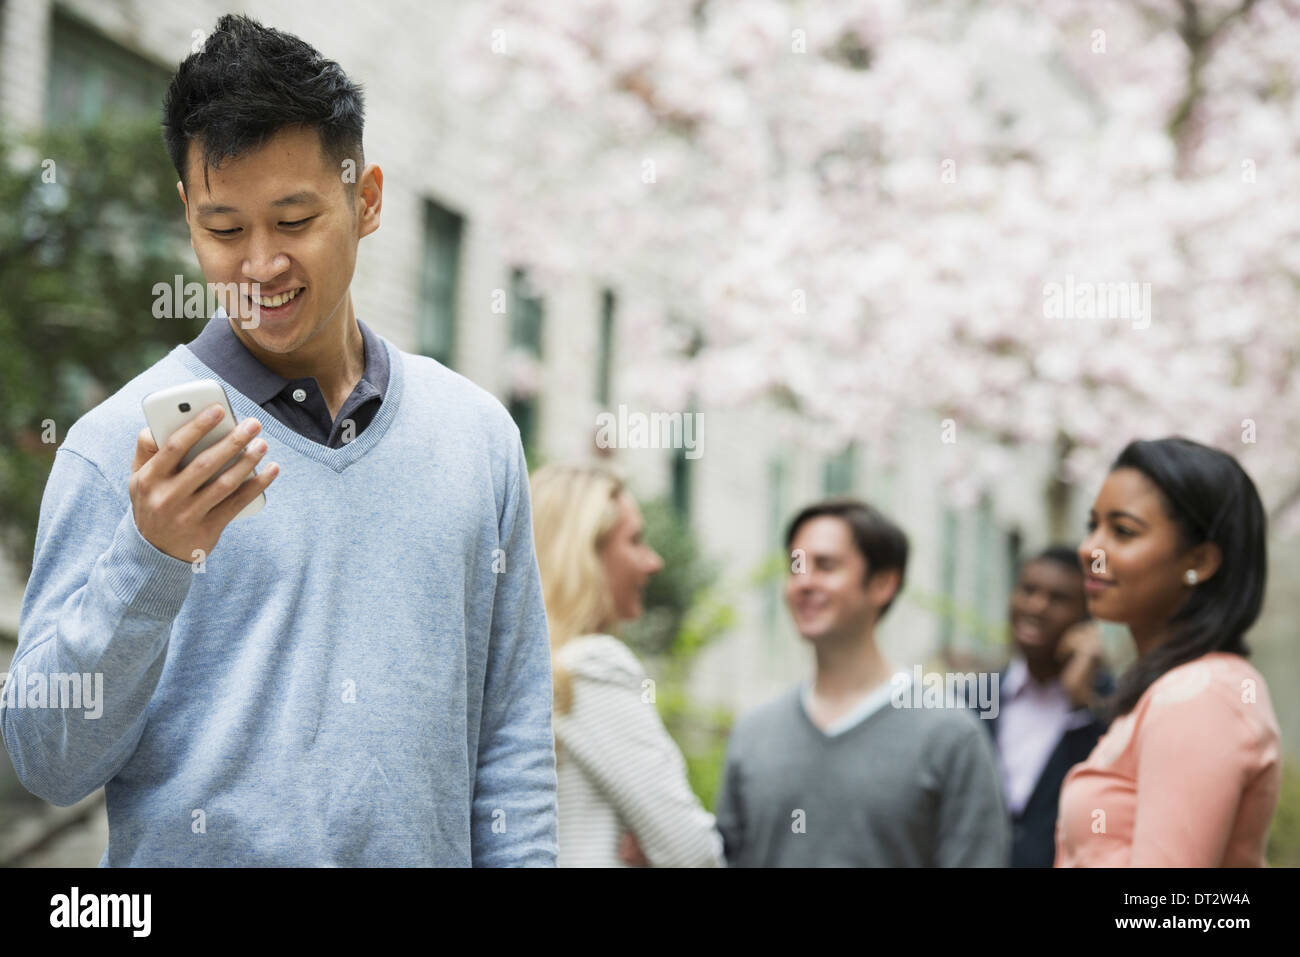 View over cityYoung people outdoors in a city park A man checking his cell phone Four people under a tree in blossom Stock Photo